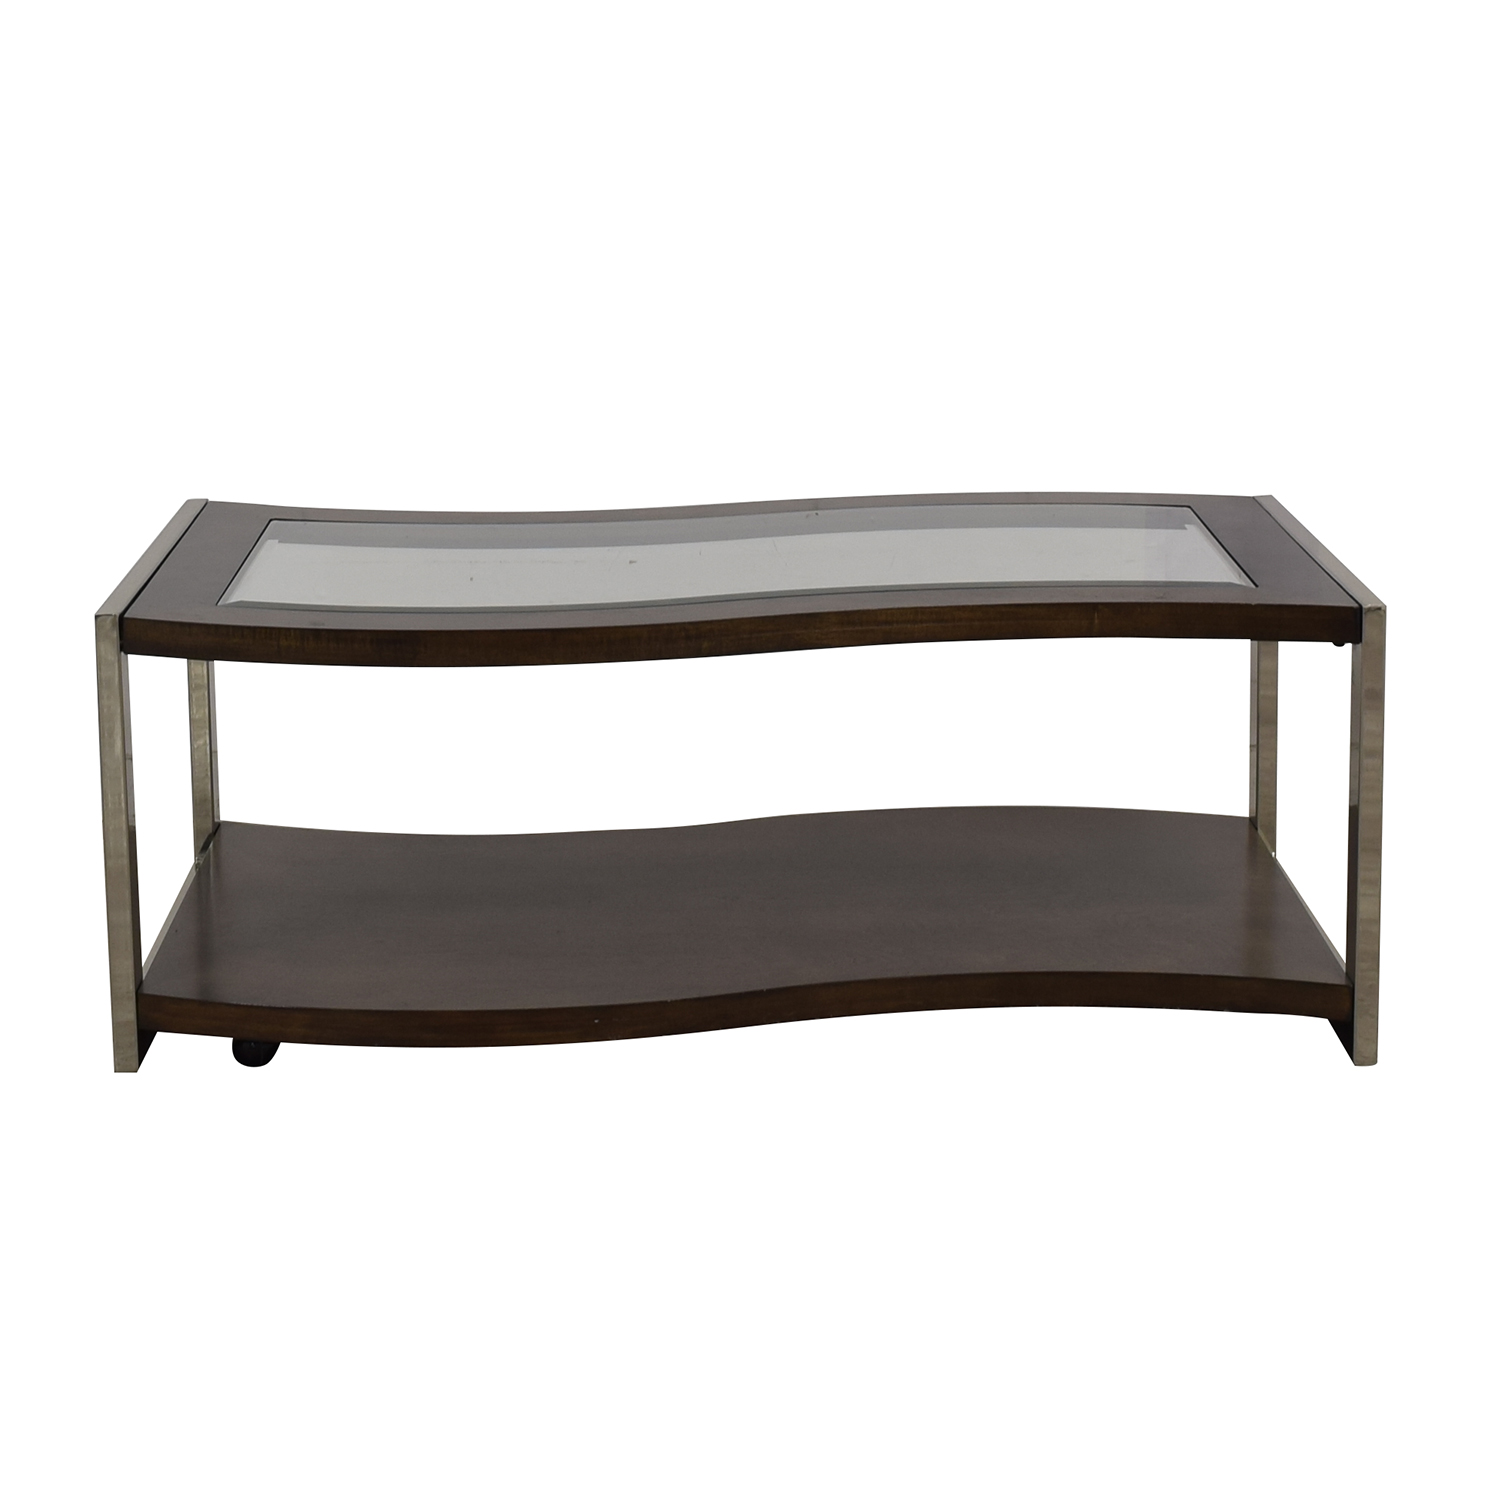 buy Raymour & Flanigan Wave Glass Wood & Chrome Coffee Table Raymour & Flanigan Sofas